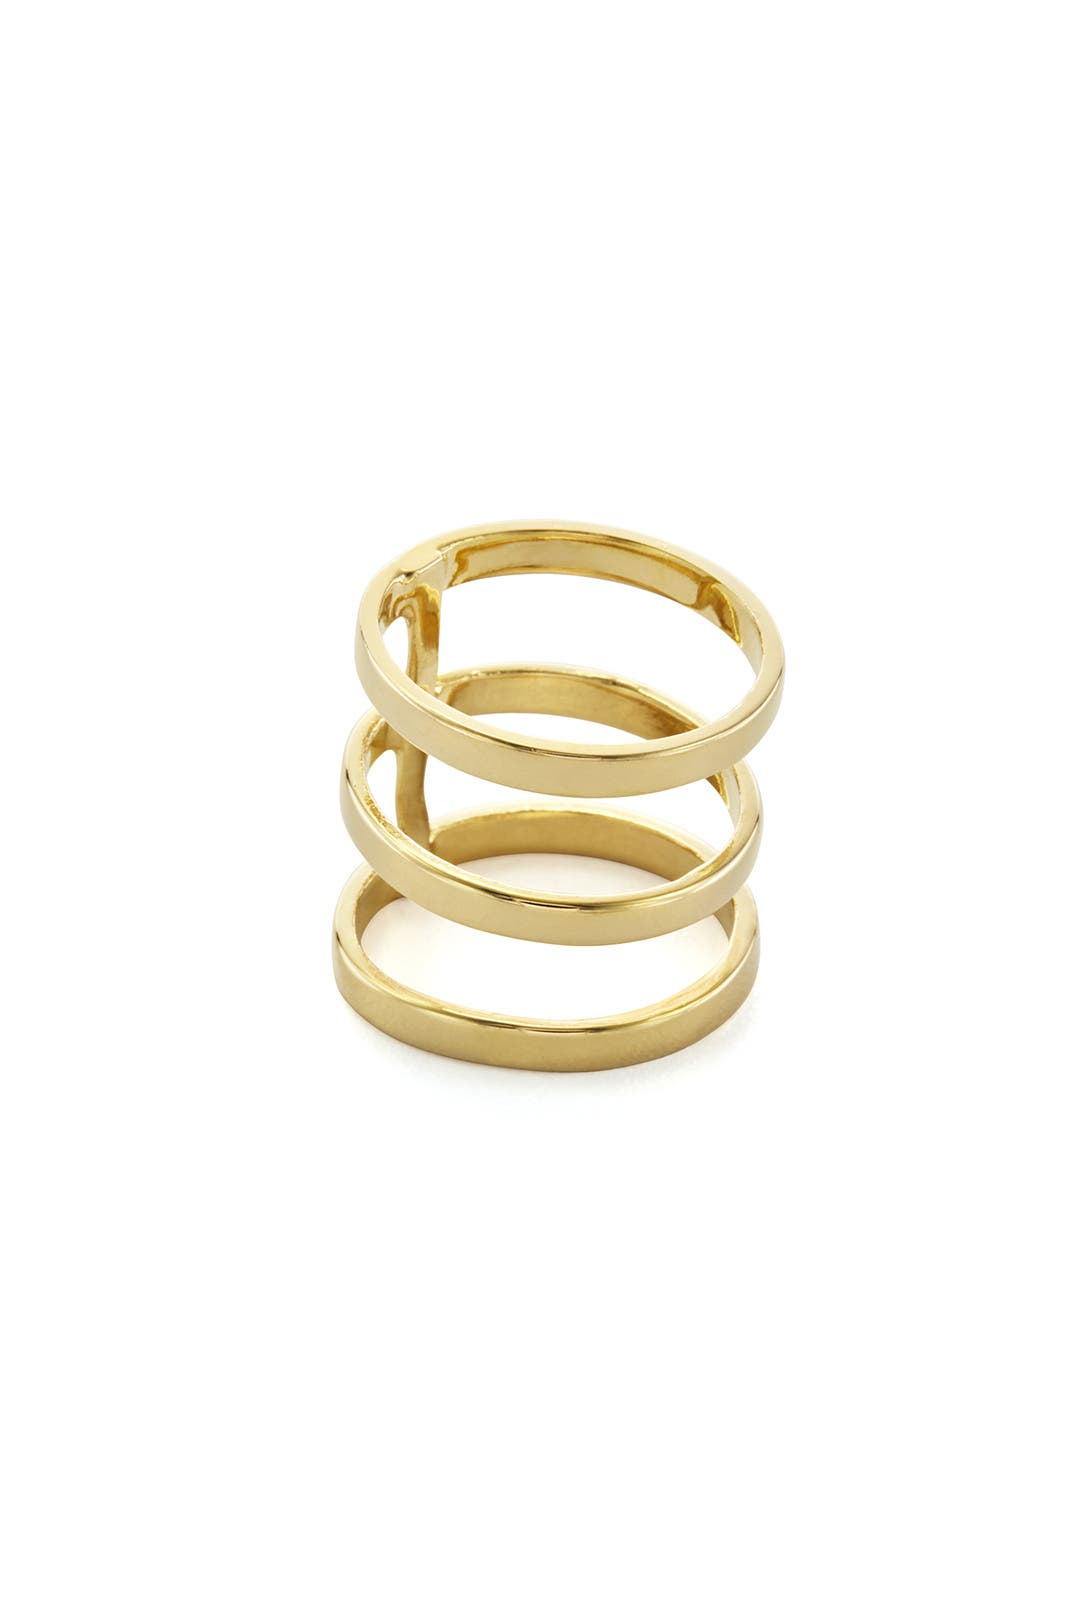 Tribar Ring by Campbell